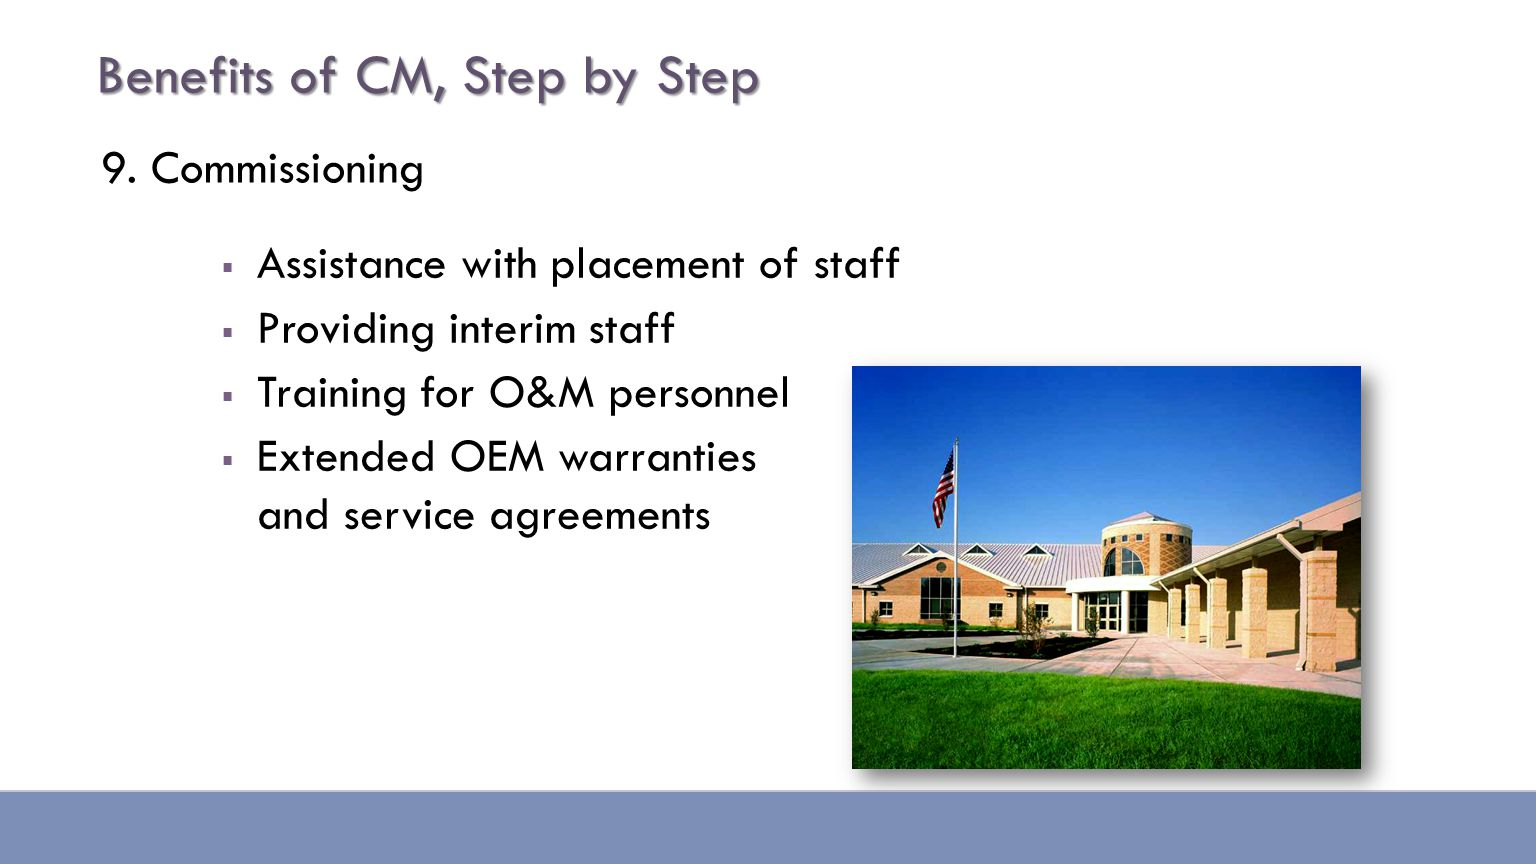 9. Commissioning  Assistance with placement of staff  Providing interim staff  Training for O&M personnel  Extended OEM warranties and service agr